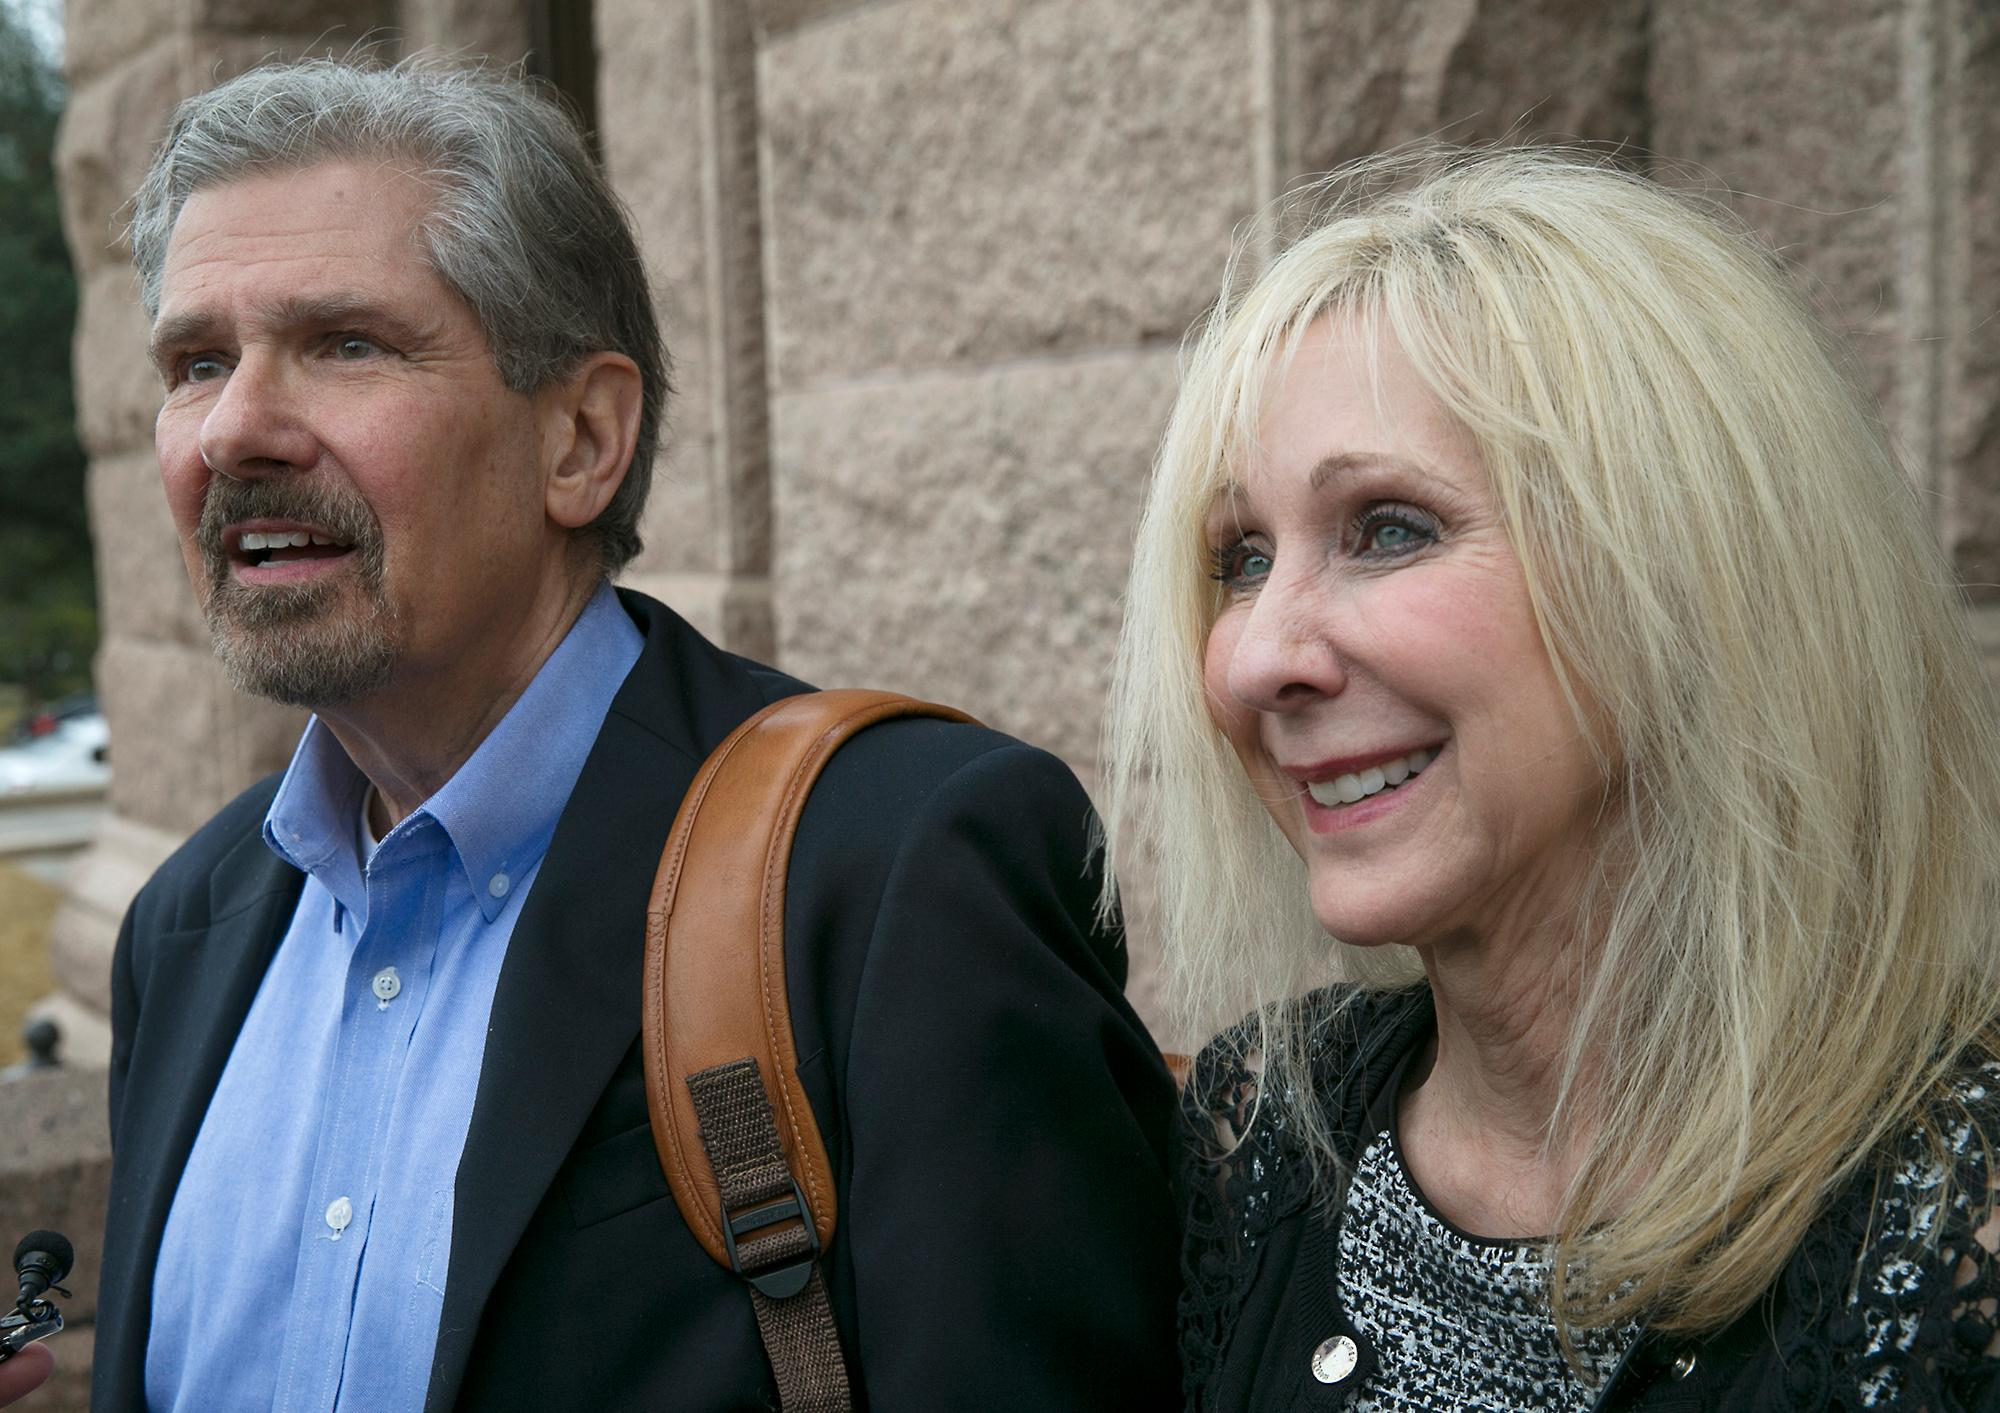 Kent Whitaker and his wife Tanya walk out of the Texas Capitol after learning the Texas Board of Pardons and Paroles voted unanimously to recommend clemency for death row inmate Thomas Whitaker, Kent's son who was found guilty of setting up an ambush that killed his mother and brother in 2003. Despite the crime, his father had waged a desperate campaign to spare his life before Thursday's scheduled execution. The board recommended that Whitaker's sentence be reduced to life in prison as they read the reaction Tuesday, Feb. 20, 2018, in Austin, Texas. (Ralph Barrera/Austin American-Statesman via AP)